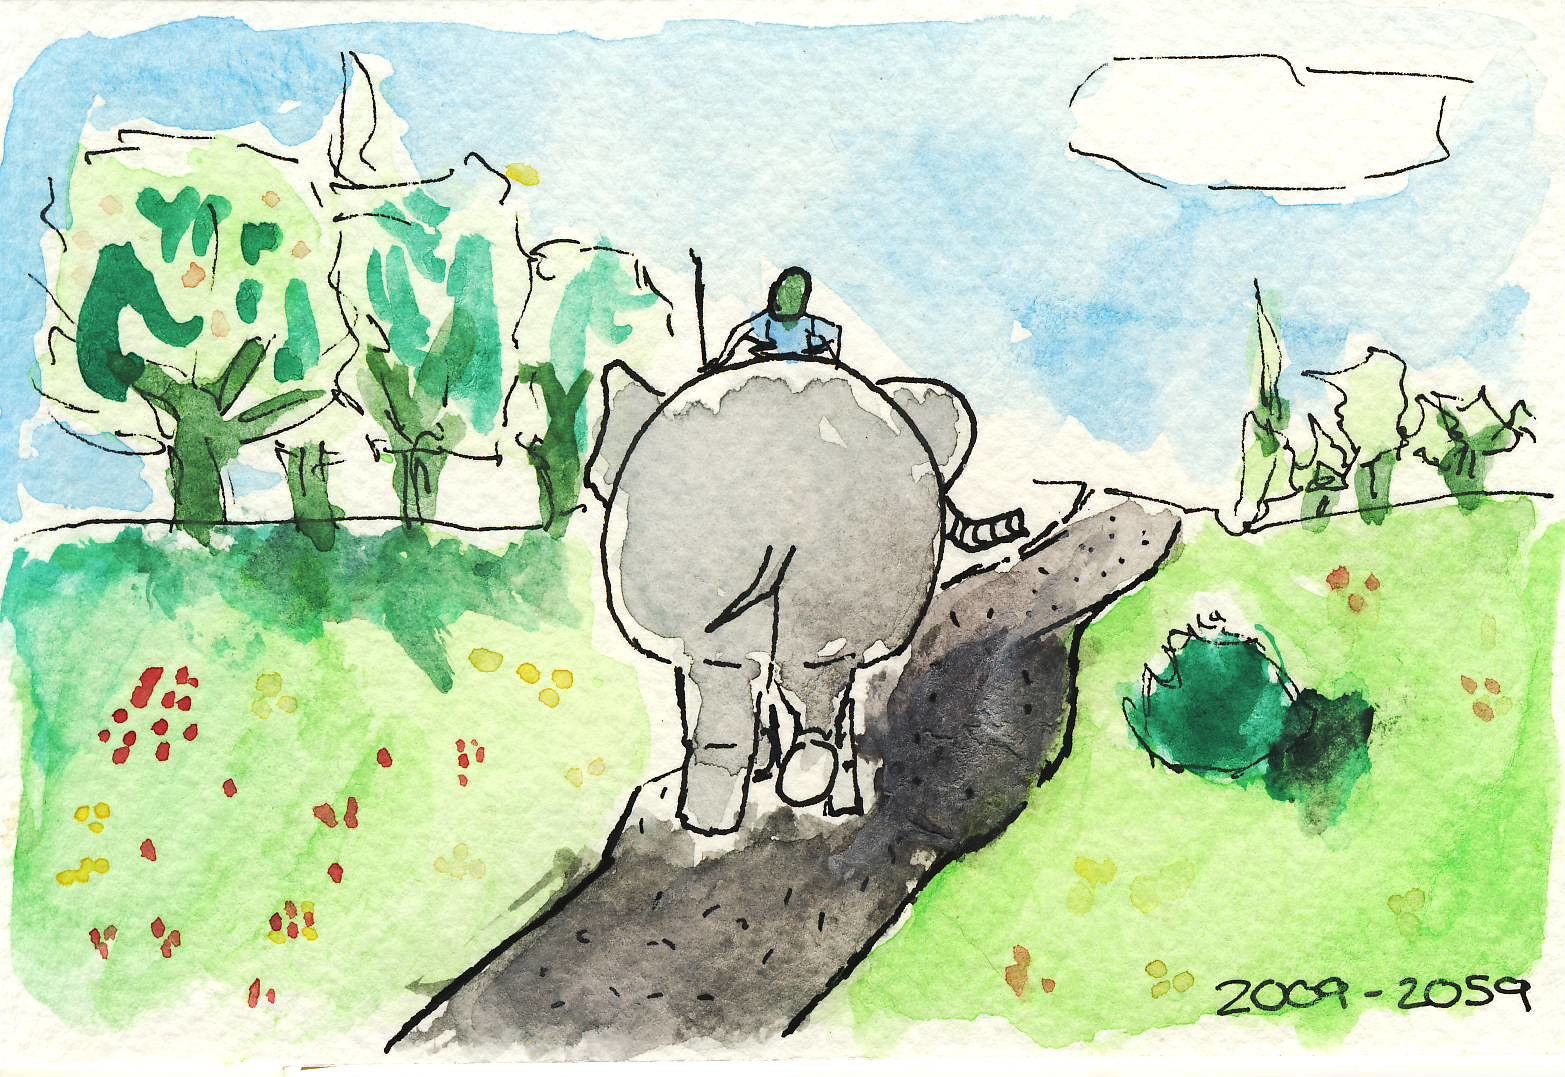 The rider, the elephant, and the path.